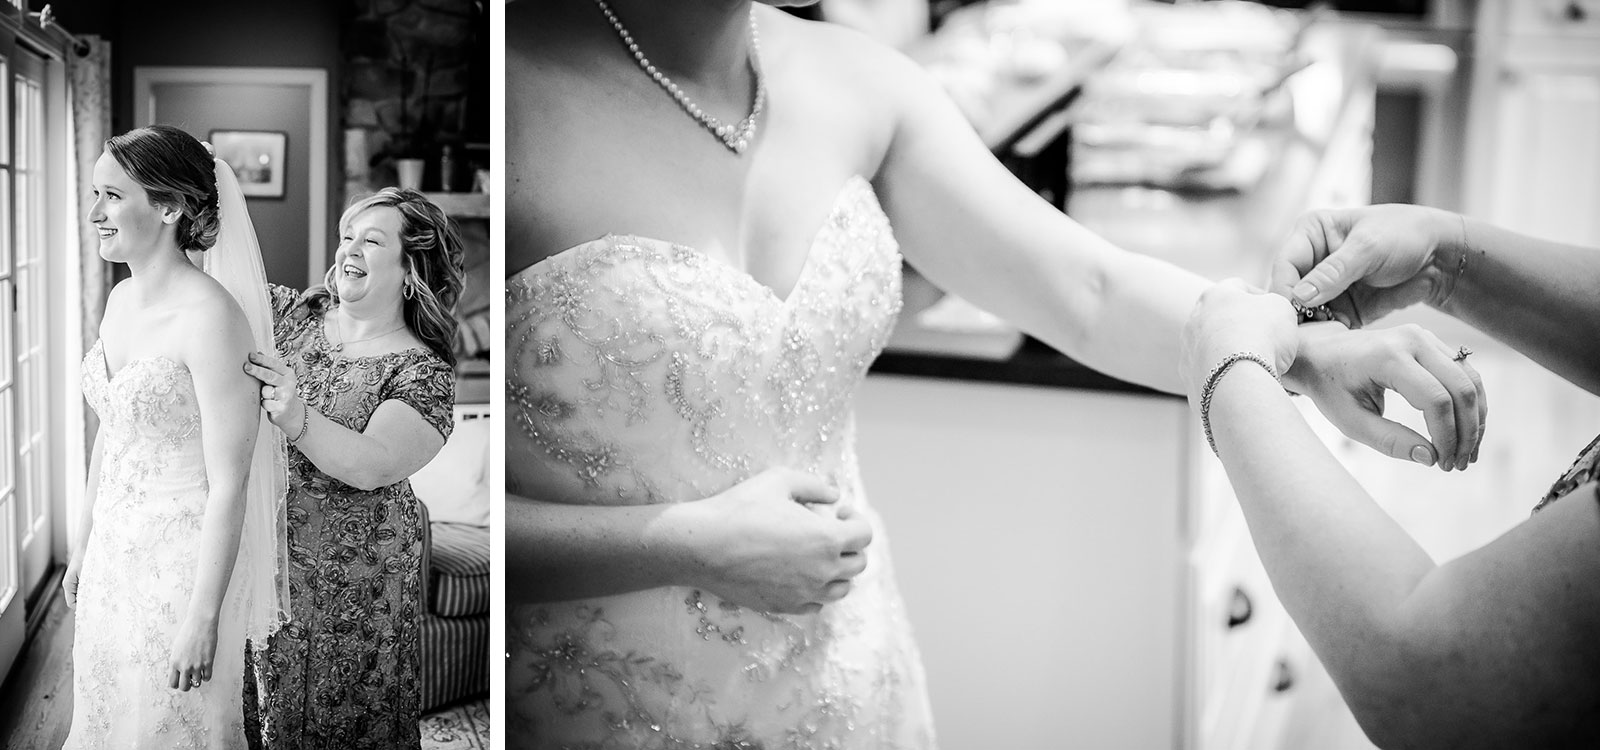 Eric_and_Christy_Photography_Blog_Wedding_Erica_Mike-4-5